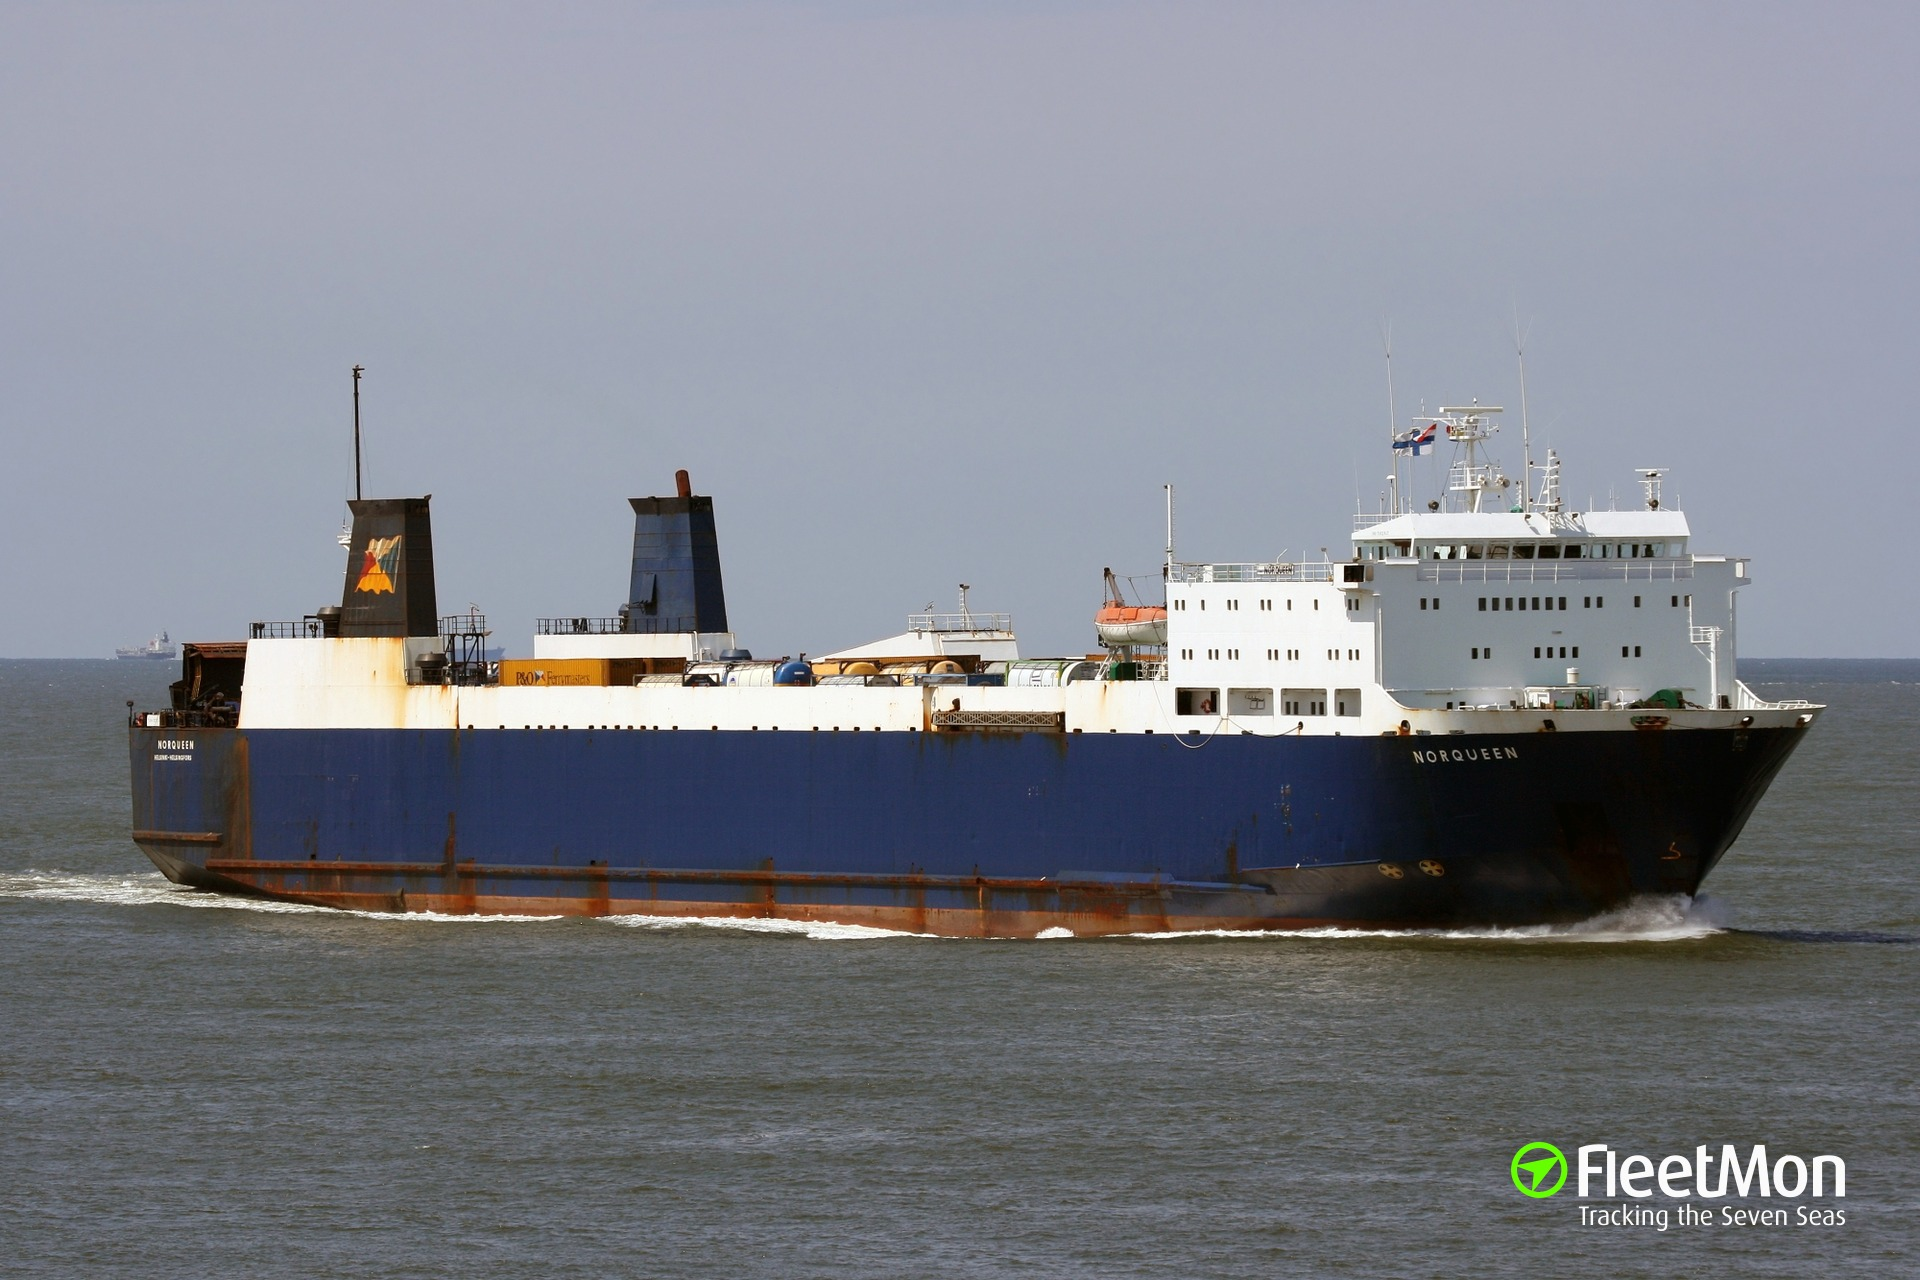 Ro-ro SUPER SHUTTLE RORO 9 attack UPDATE: tug was attacked, not ro-ro ship